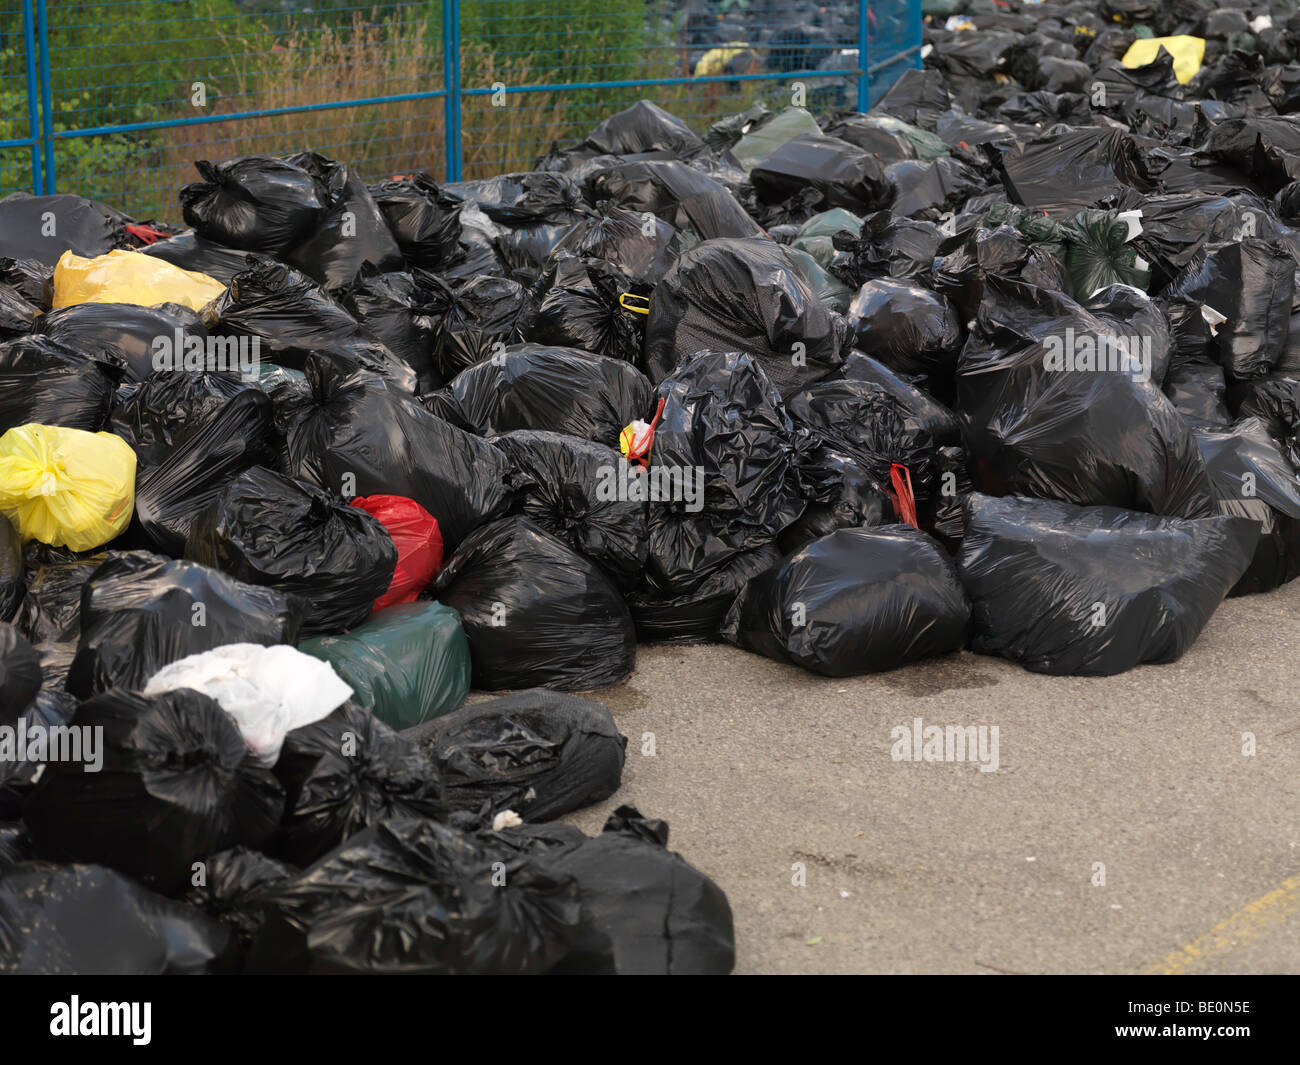 Garbage dump in a park - Stock Image